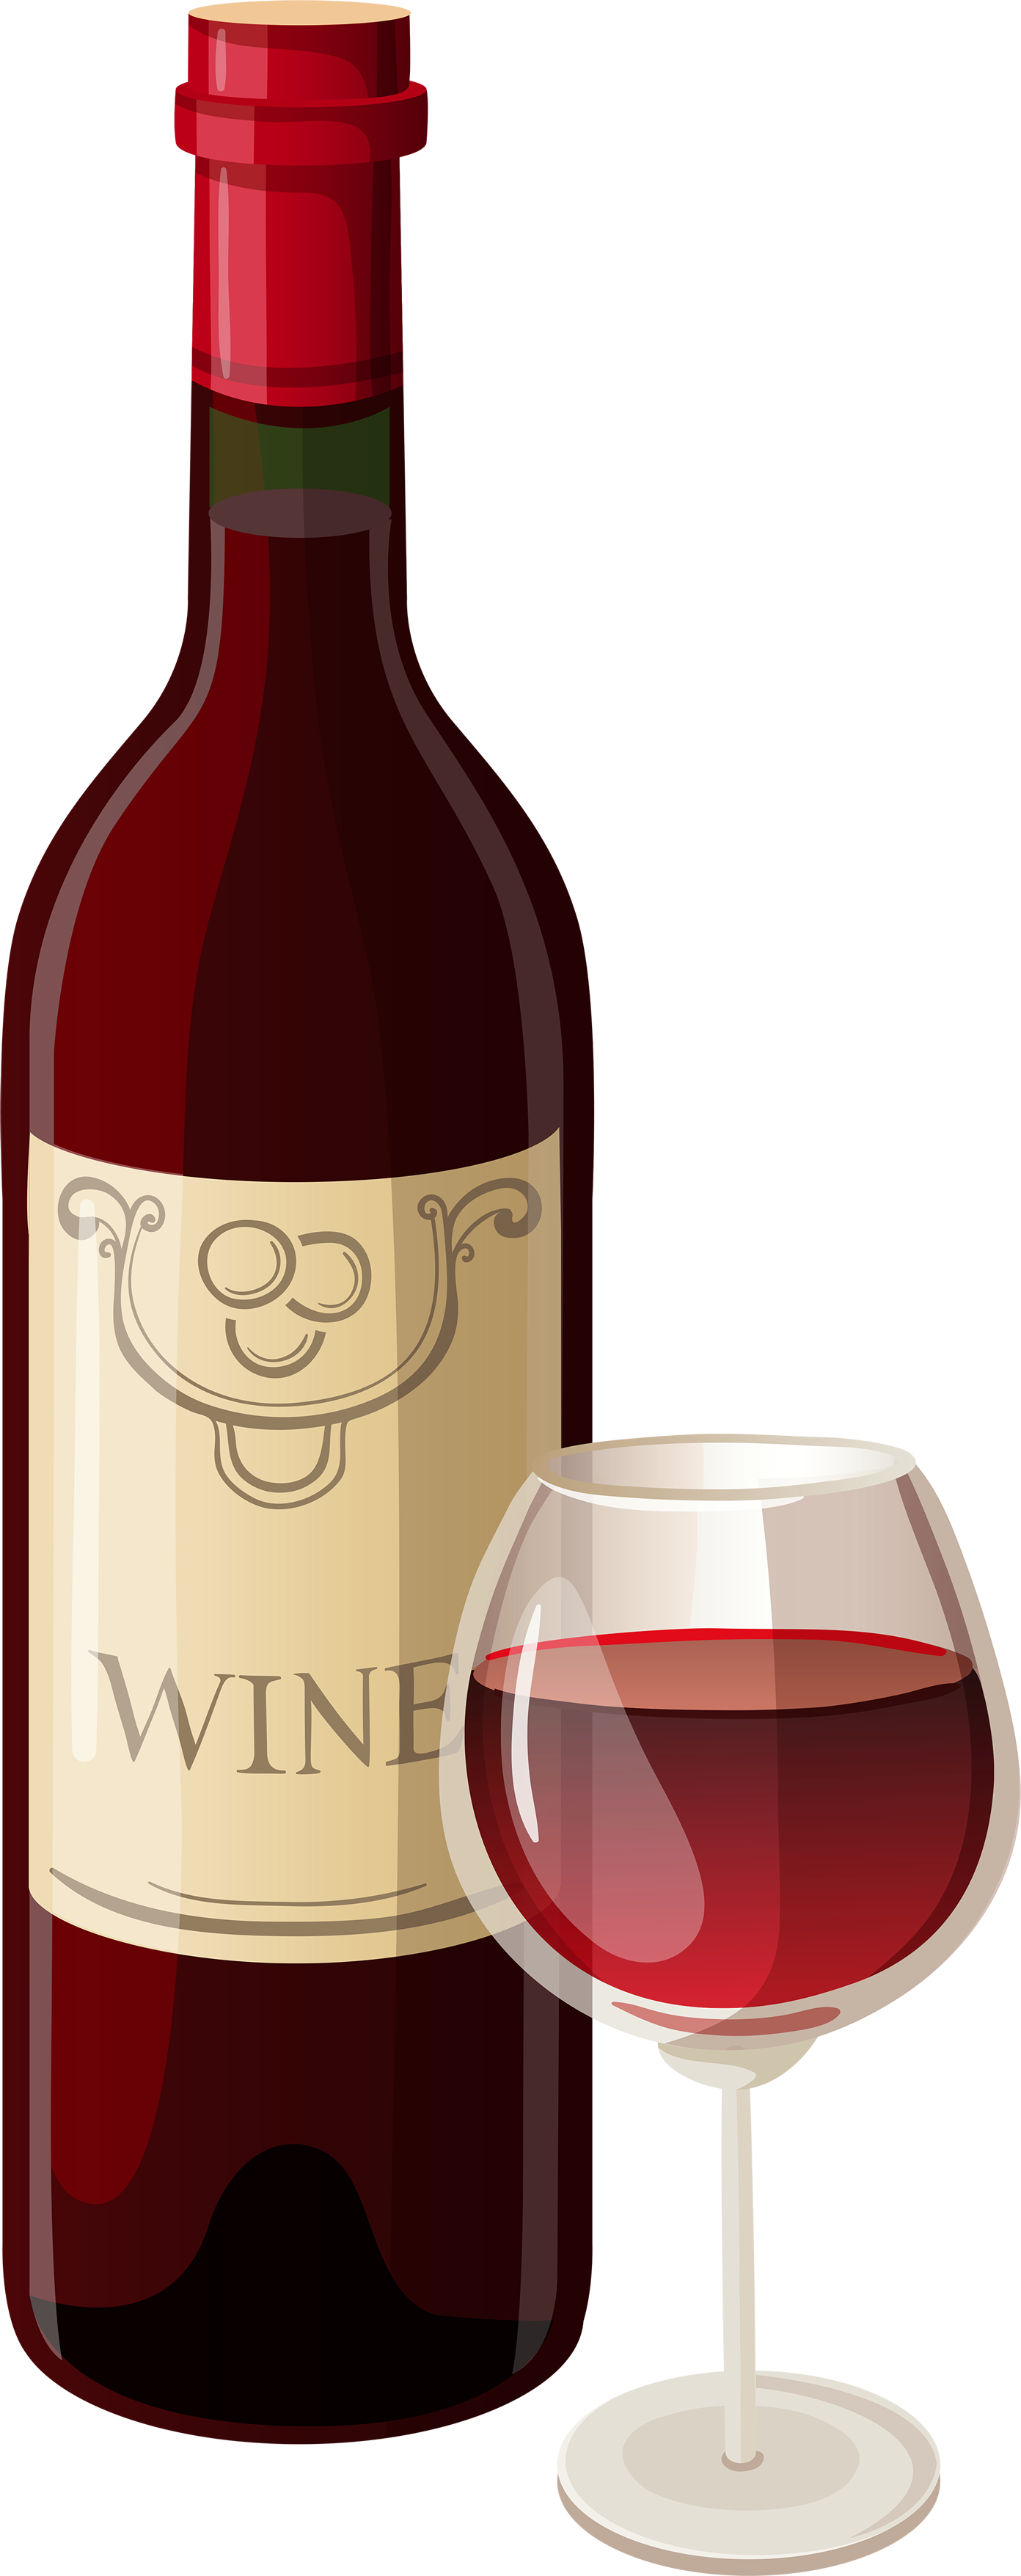 image result for wine bottle and glass clip art [ 1392 x 3511 Pixel ]